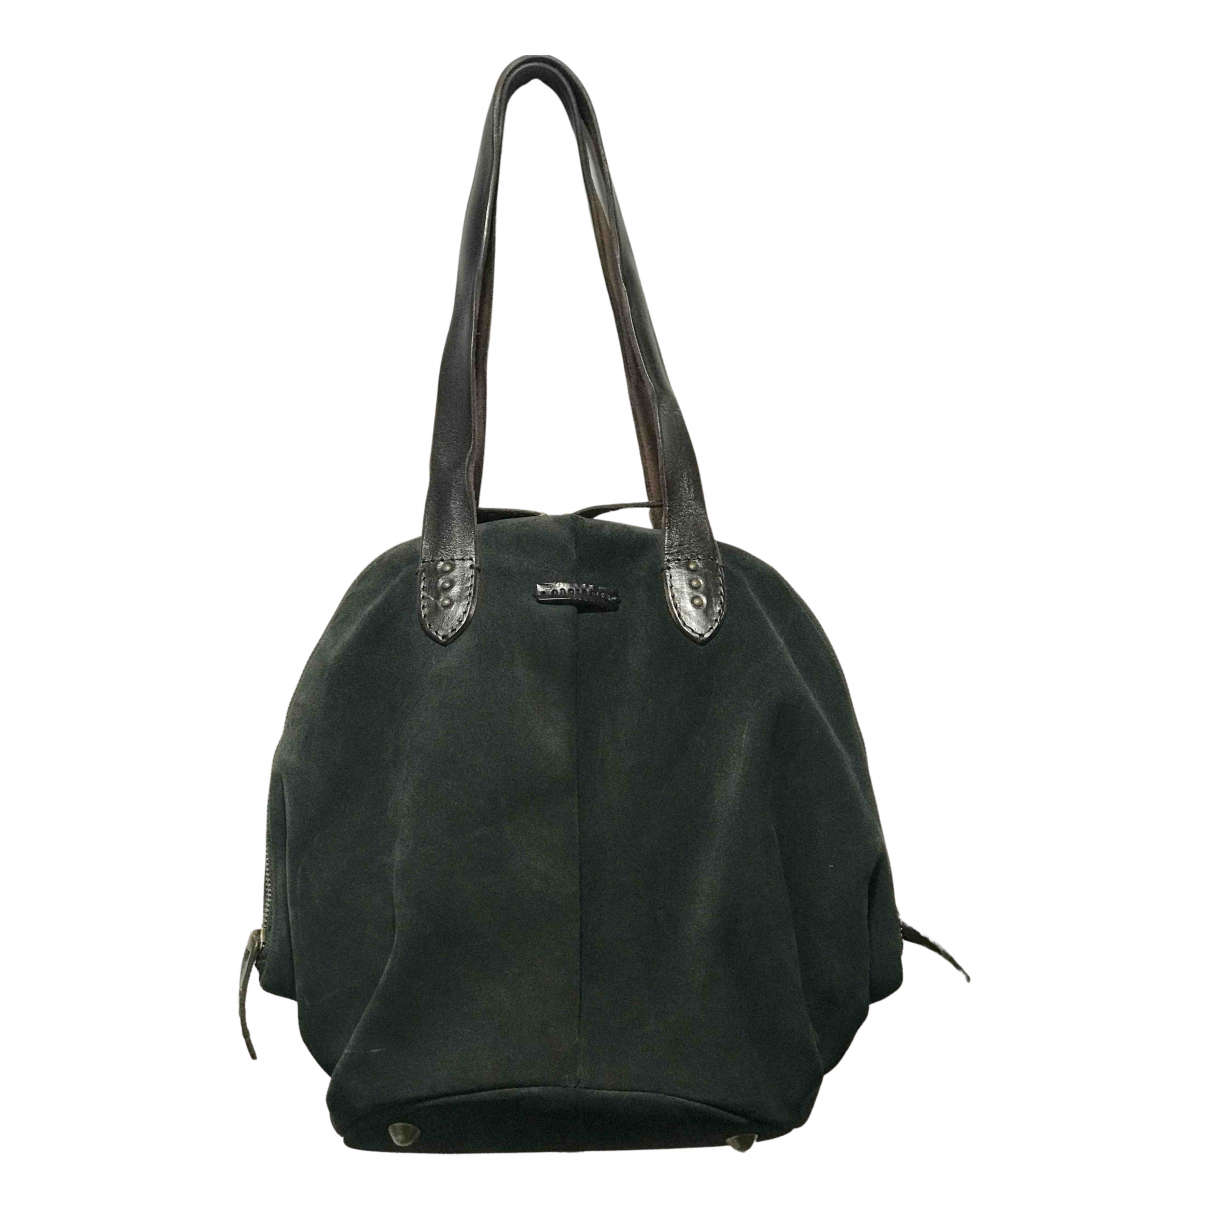 Orciani N Green Suede handbag for Women N